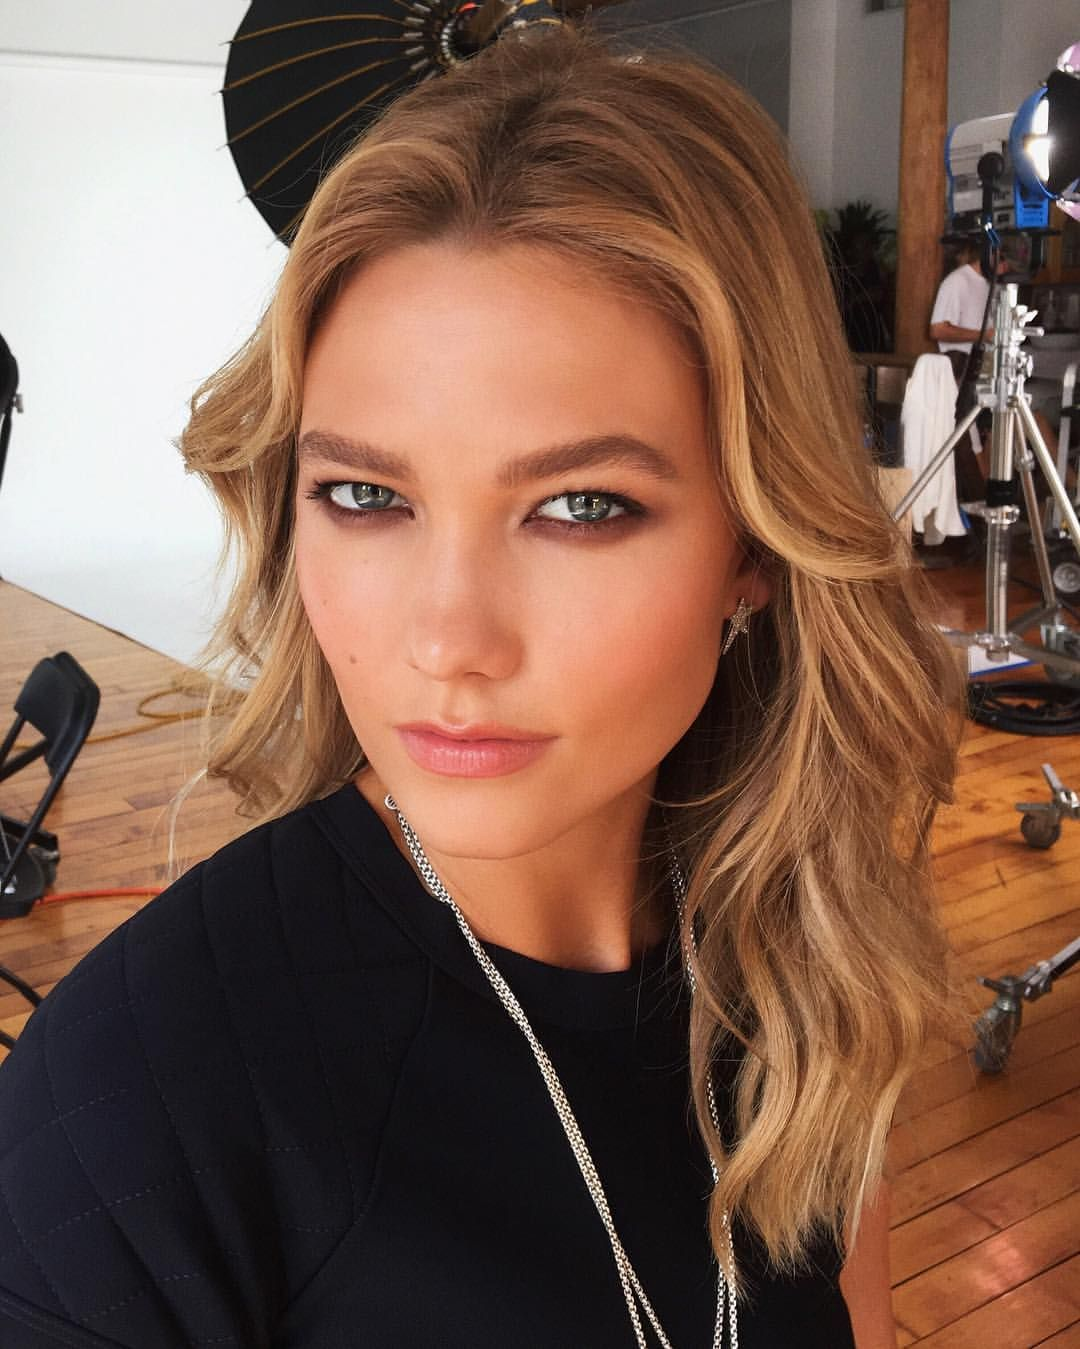 Karlie kloss pic from ig 8